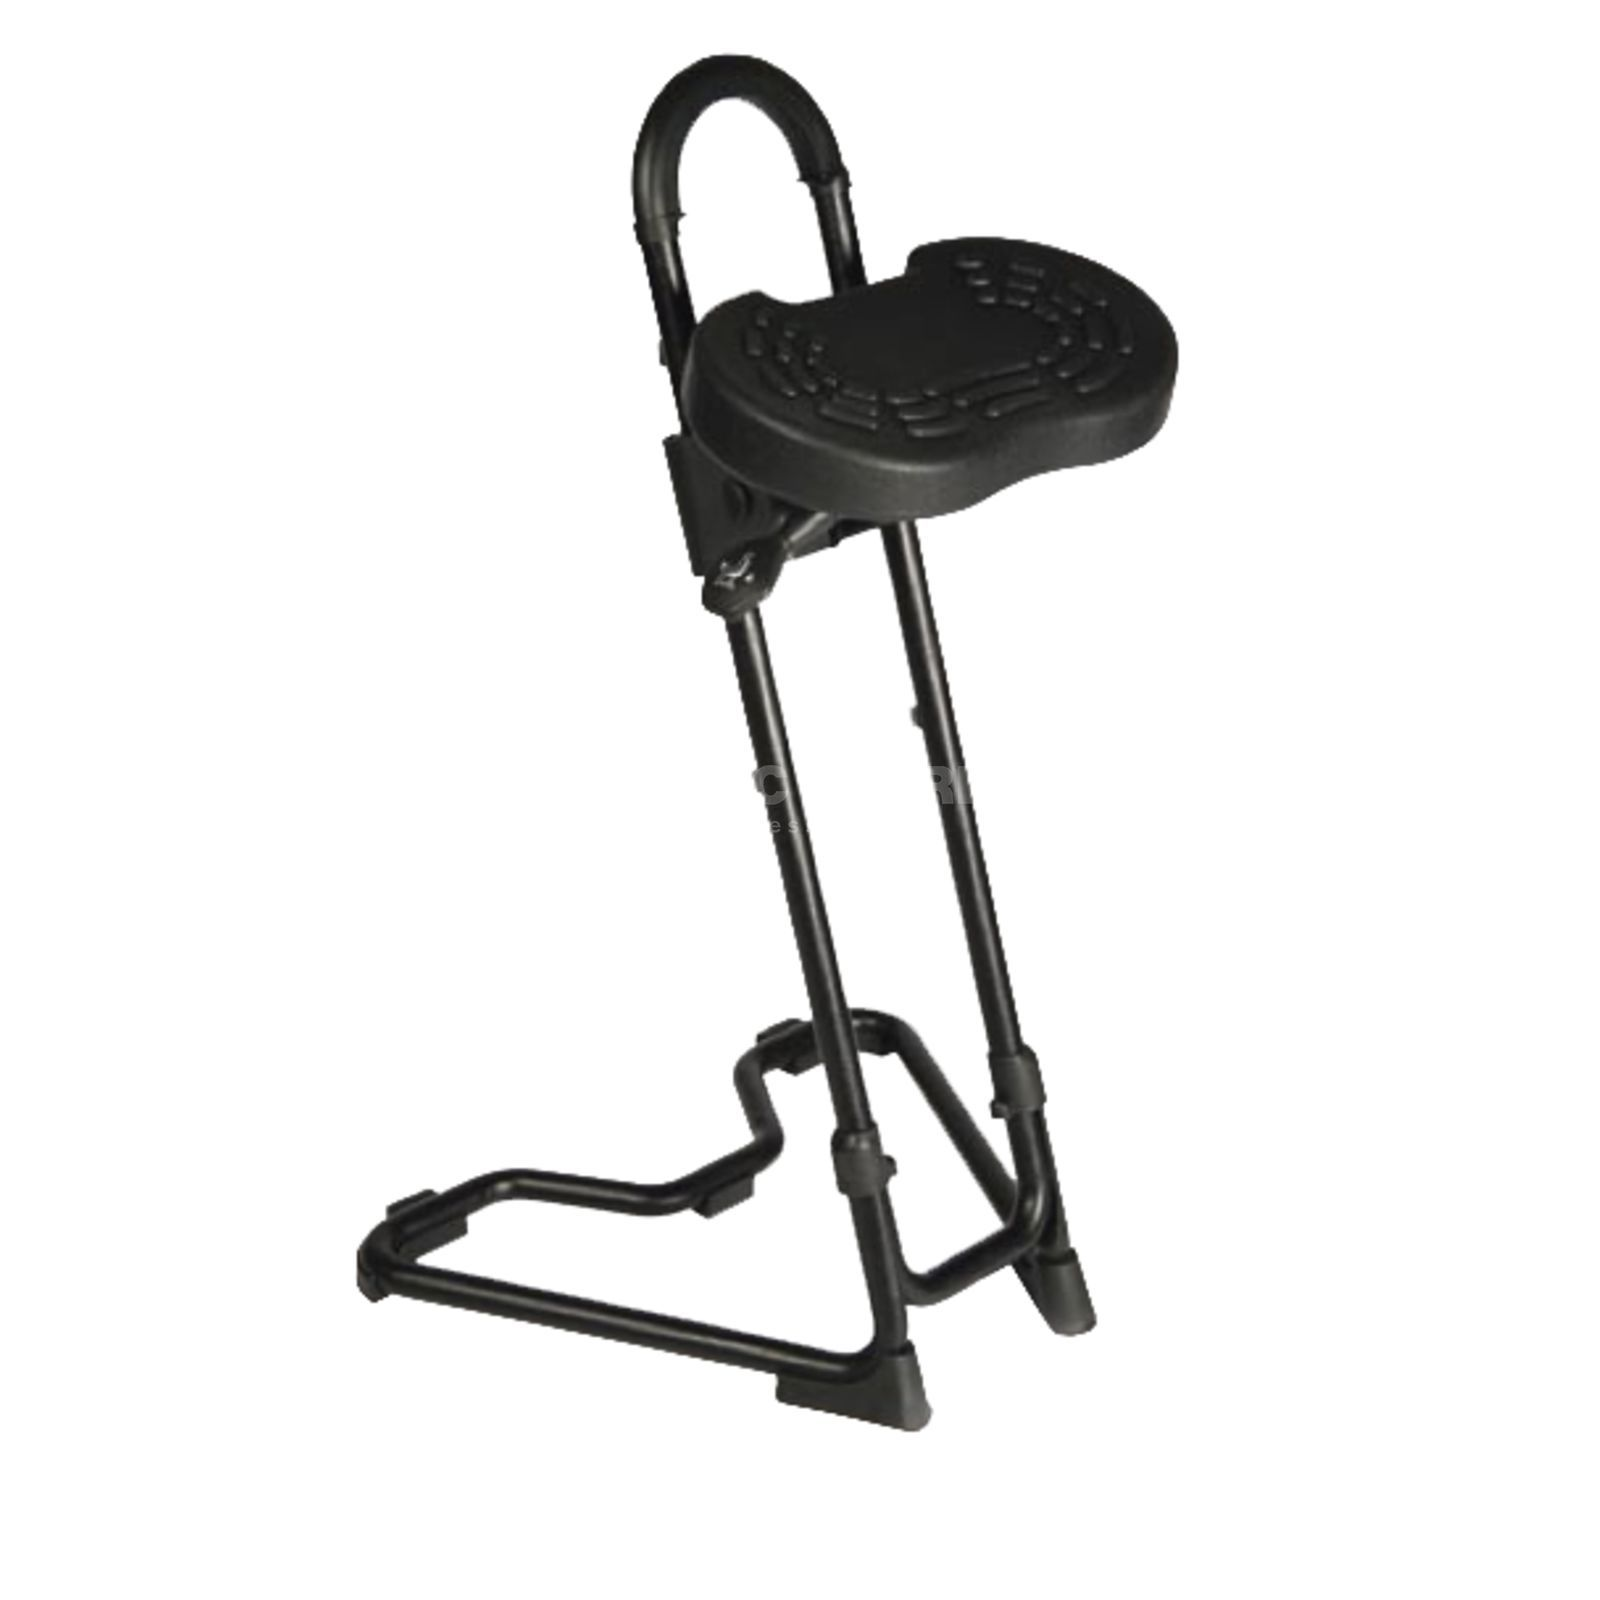 Mey Chair Systems AF6-PU6 Black Product Image